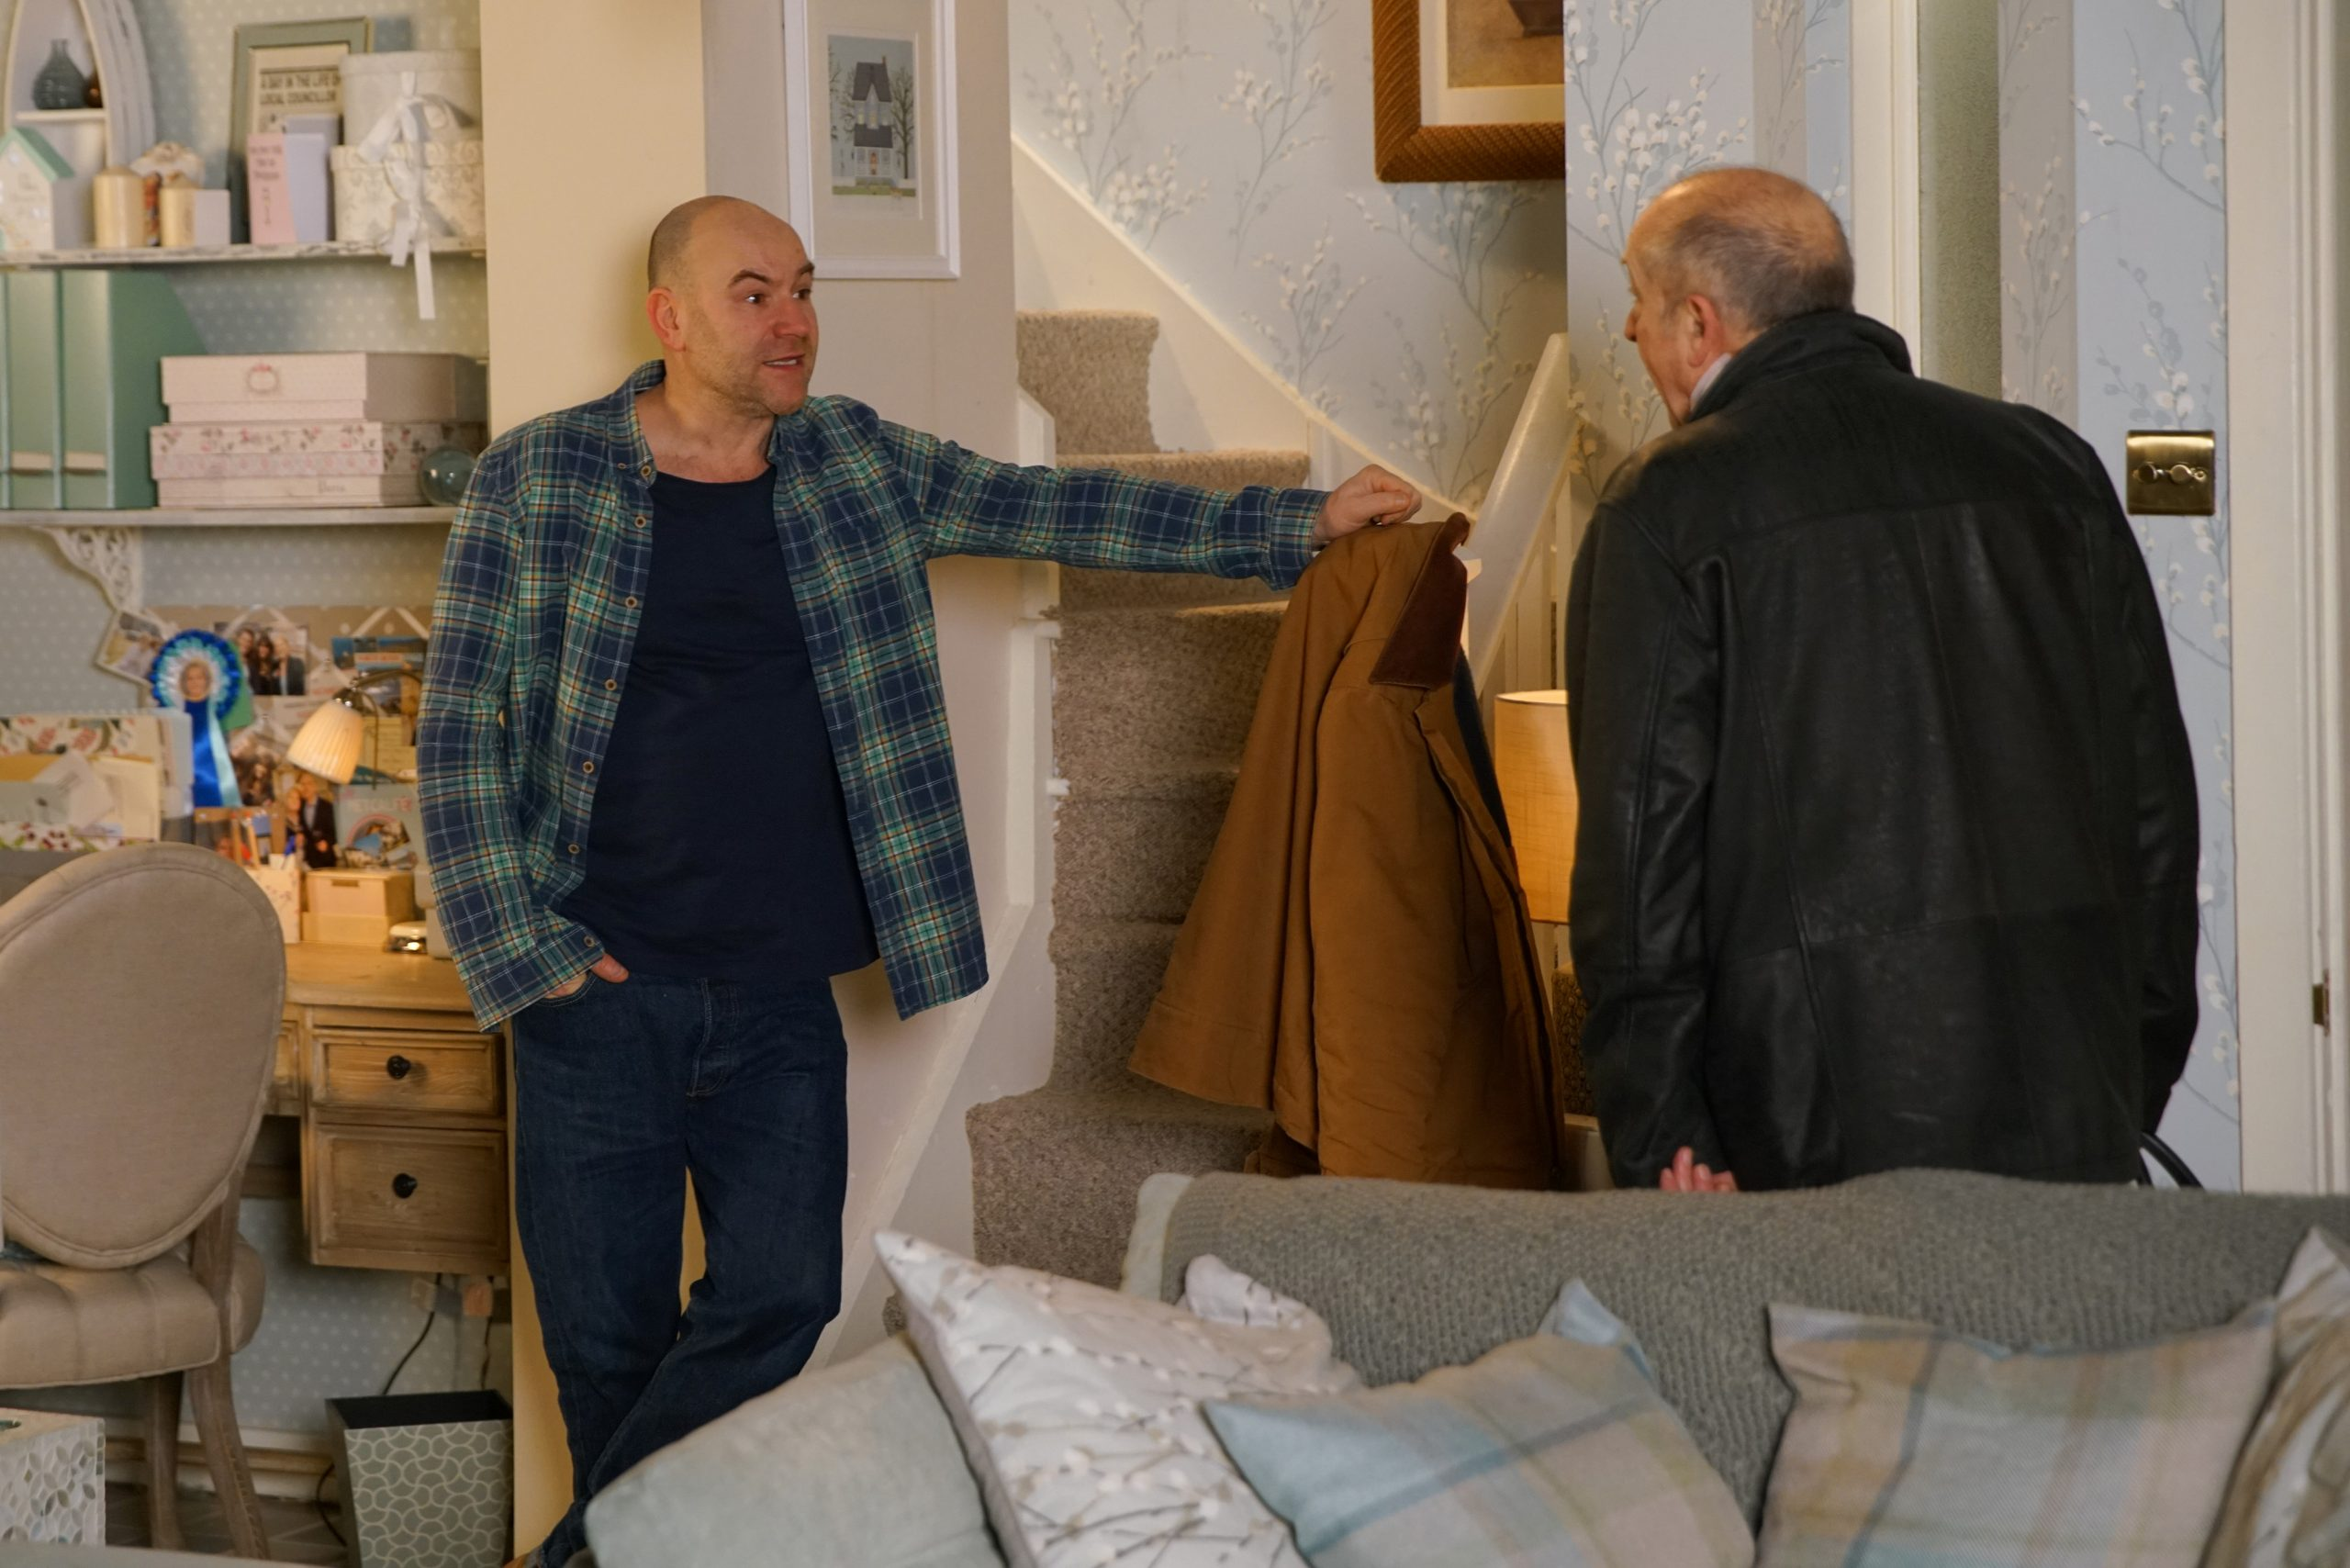 Coronation Street spoilers: Tim Metcalfe chucks his dad out!